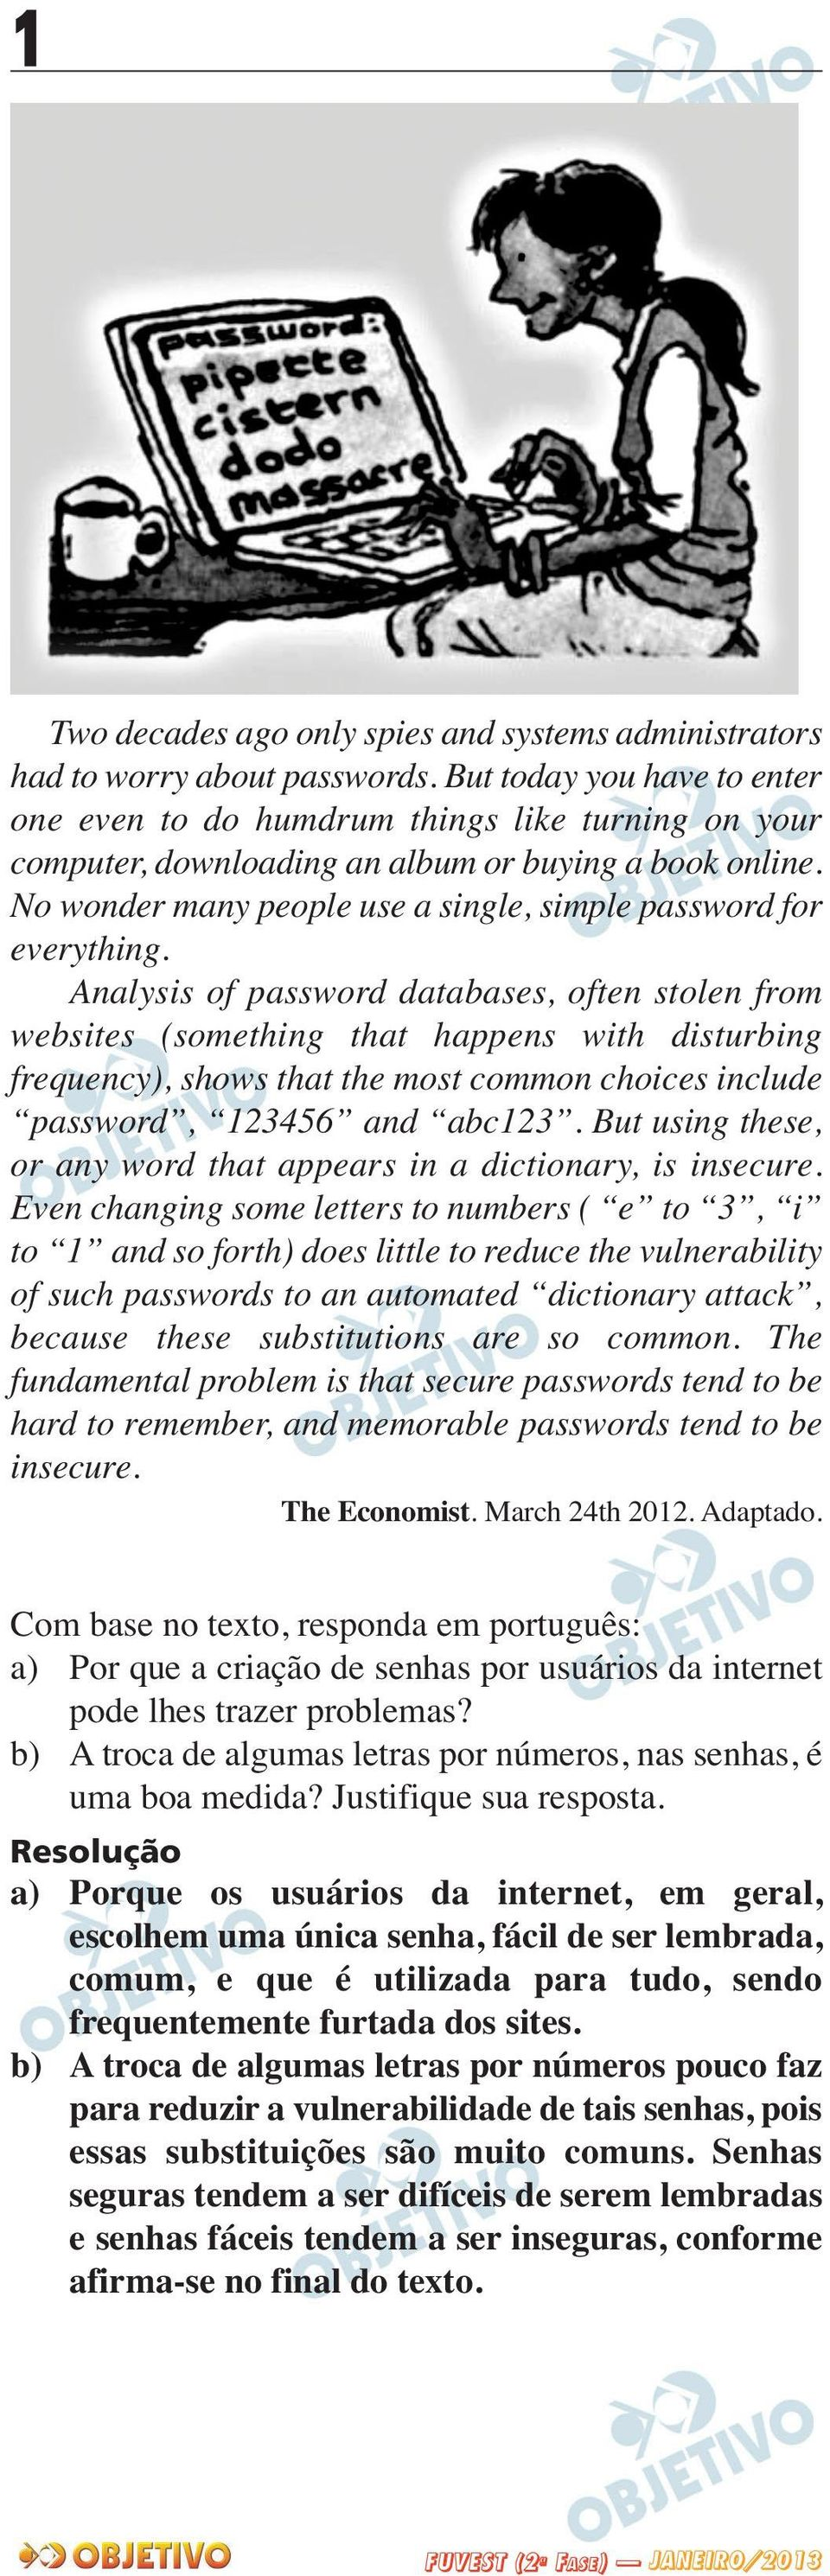 No wonder many people use a single, simple password for everything.